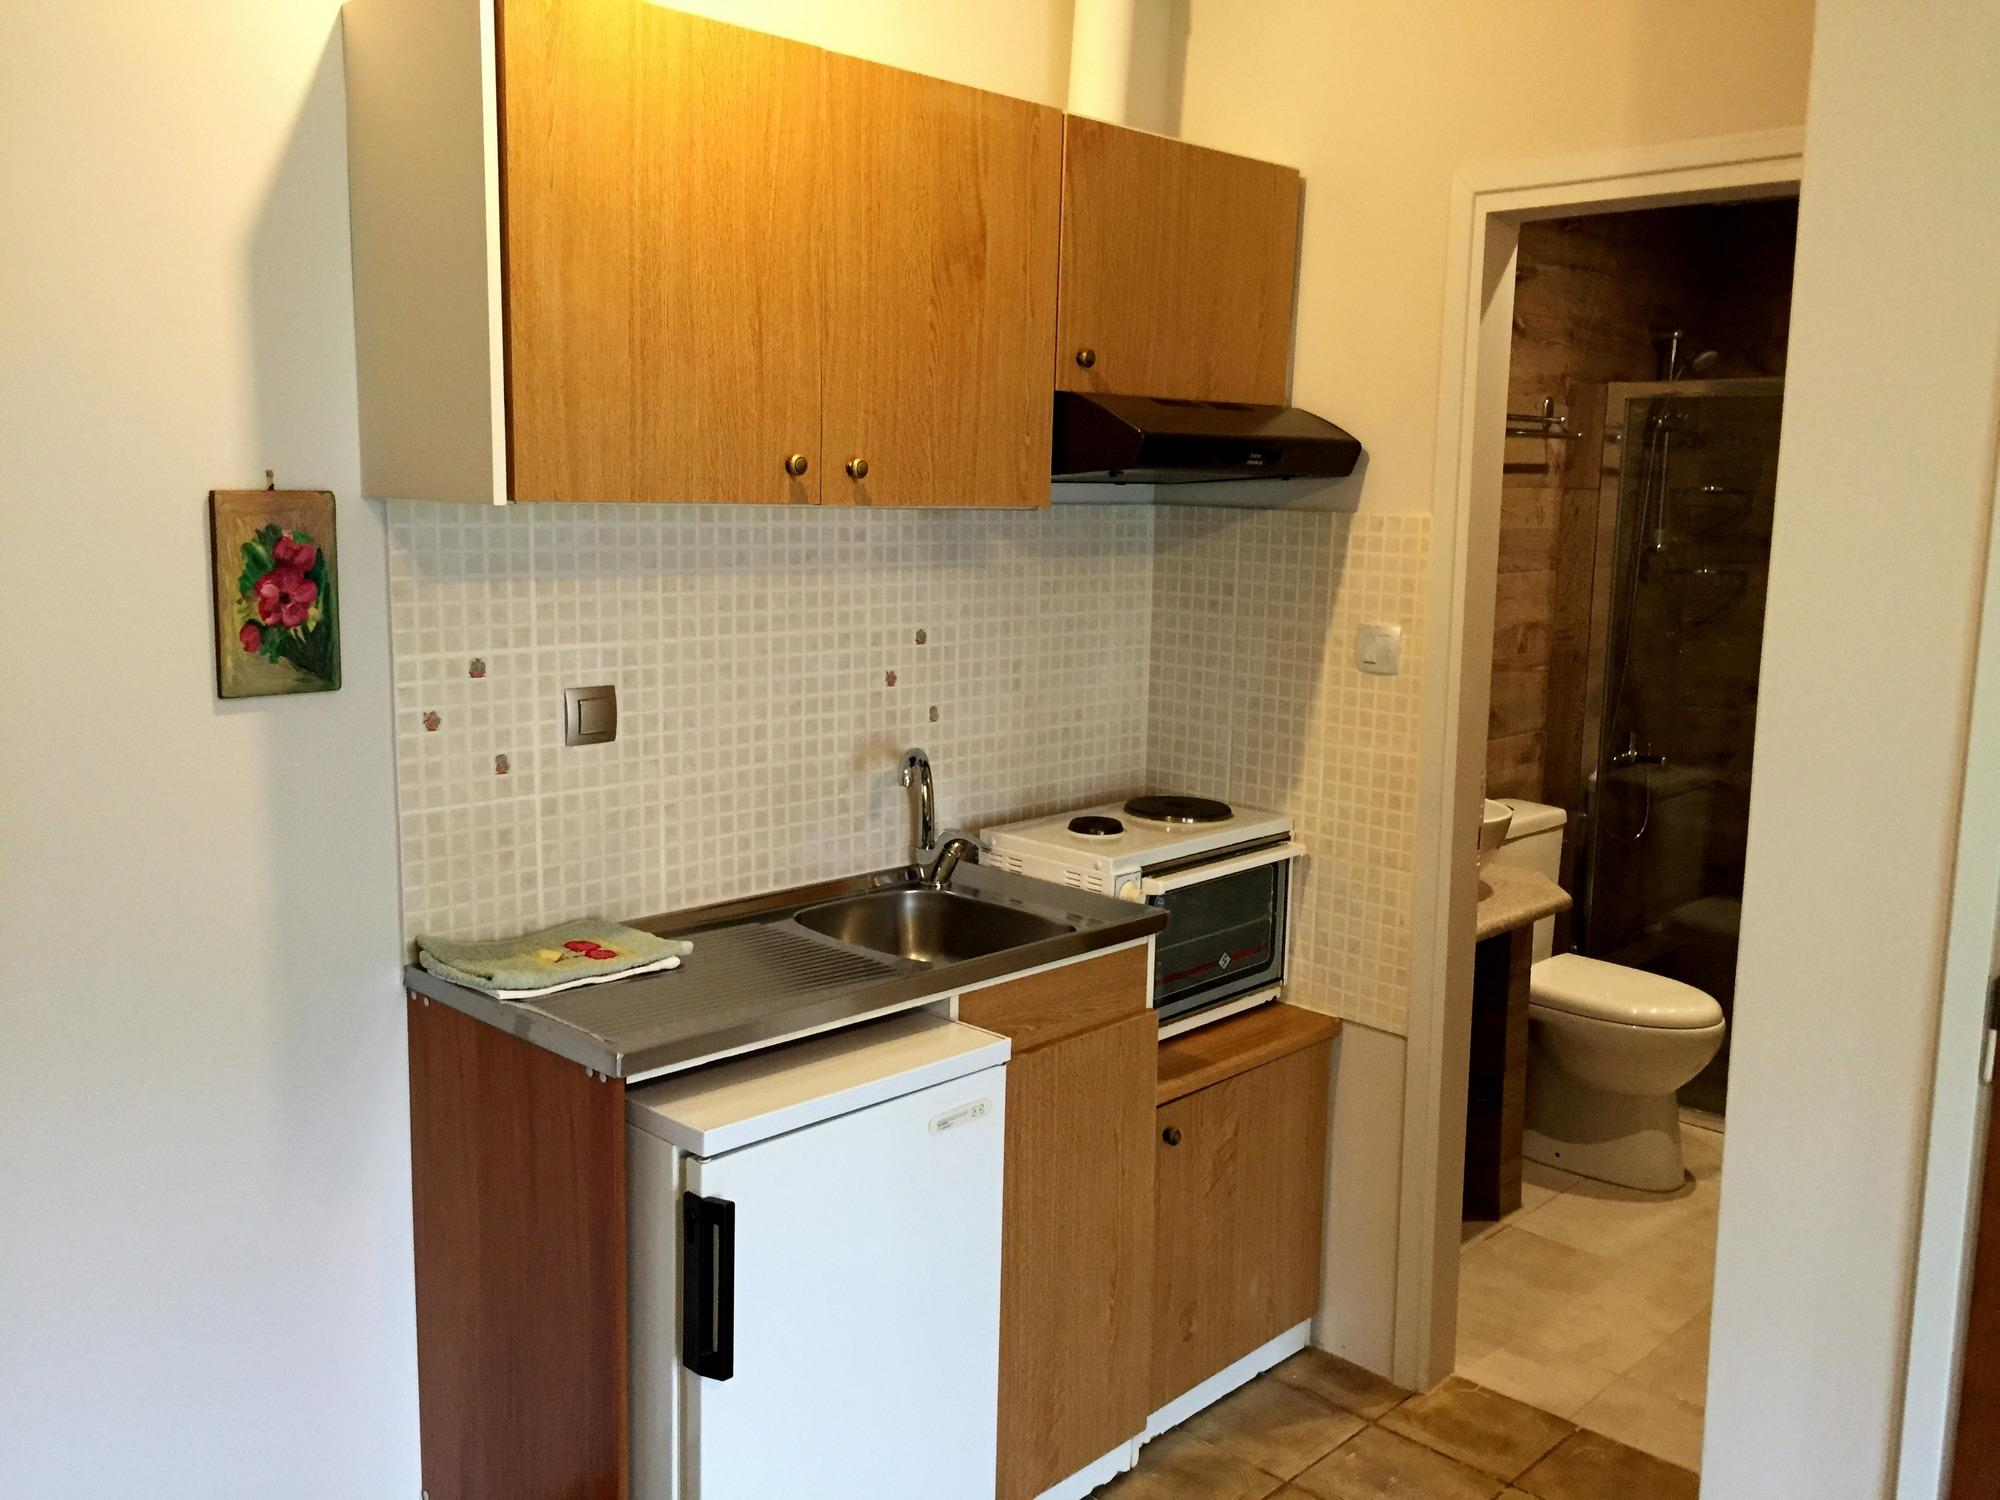 Kitchenette at self catering 4-person apartments with balcony